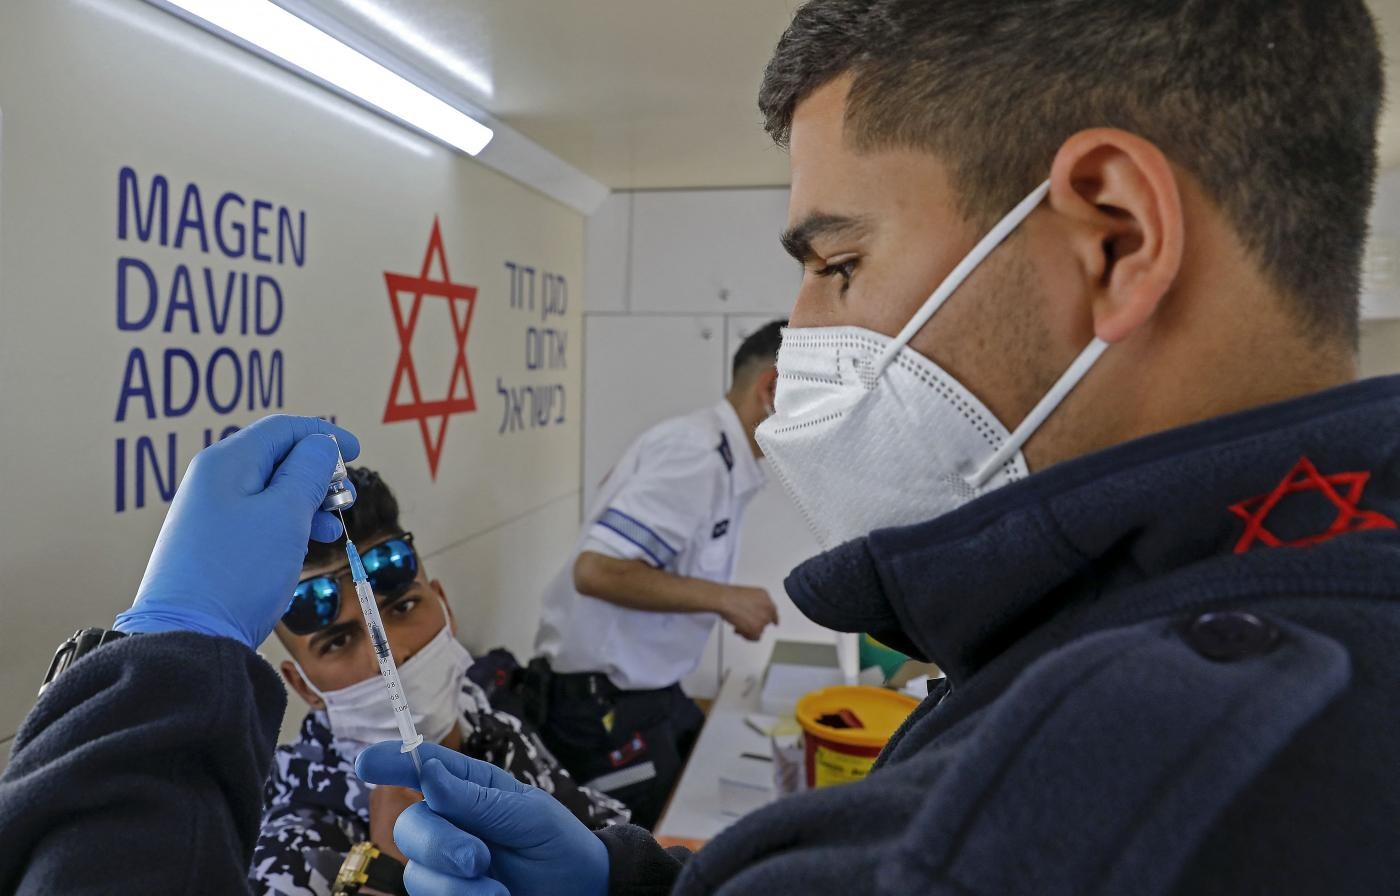 A paramedic with Israel's Magen David Adom medical services prepares a dose of the Pfizer-BioNTech COVID-19 vaccine to inoculate a Palestinian man in a mobile clinic on 26 February 2021, at the Damascus Gate in Jerusalem's Old City. (AHMAD GHARABLI / AFP)